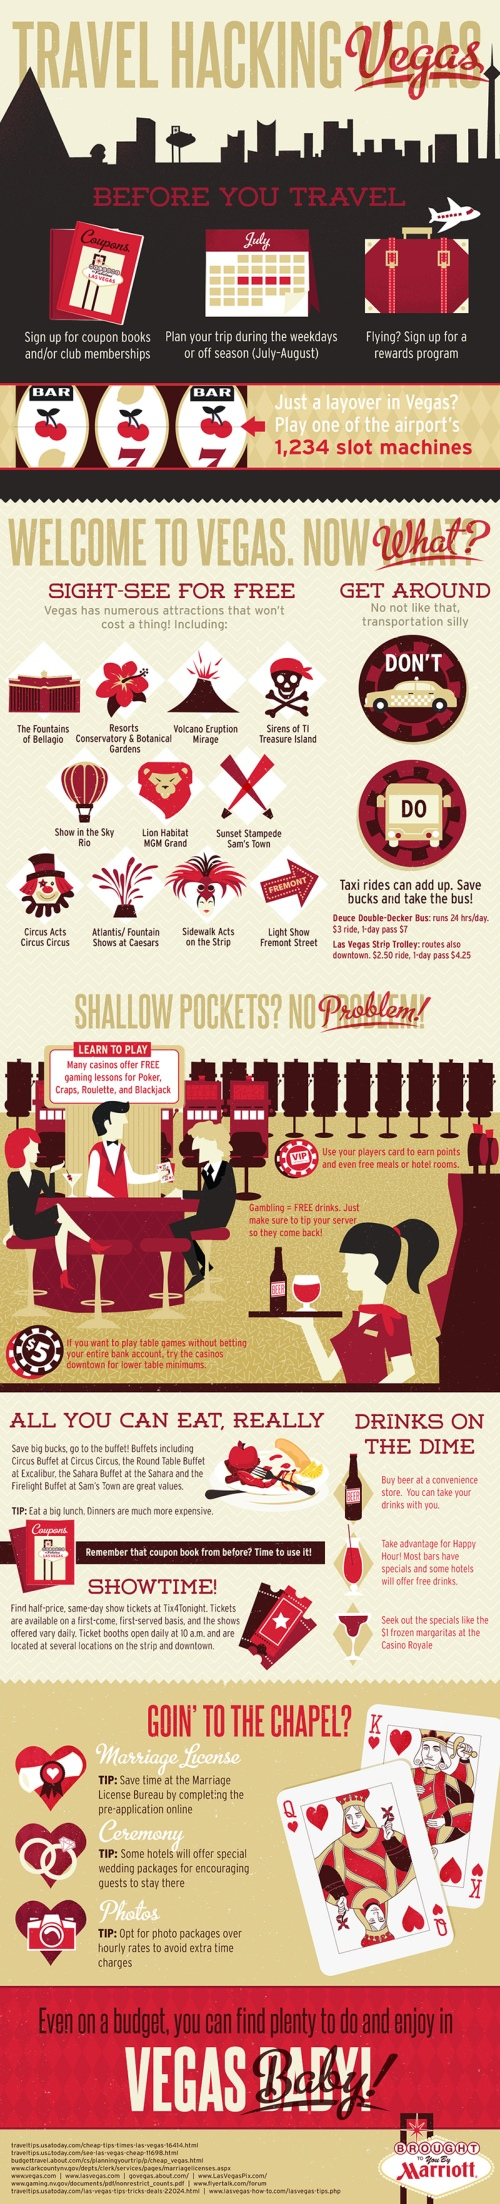 travel-hacking-vegas--las-vegas-deals-infographic_50e7523ebc2a0